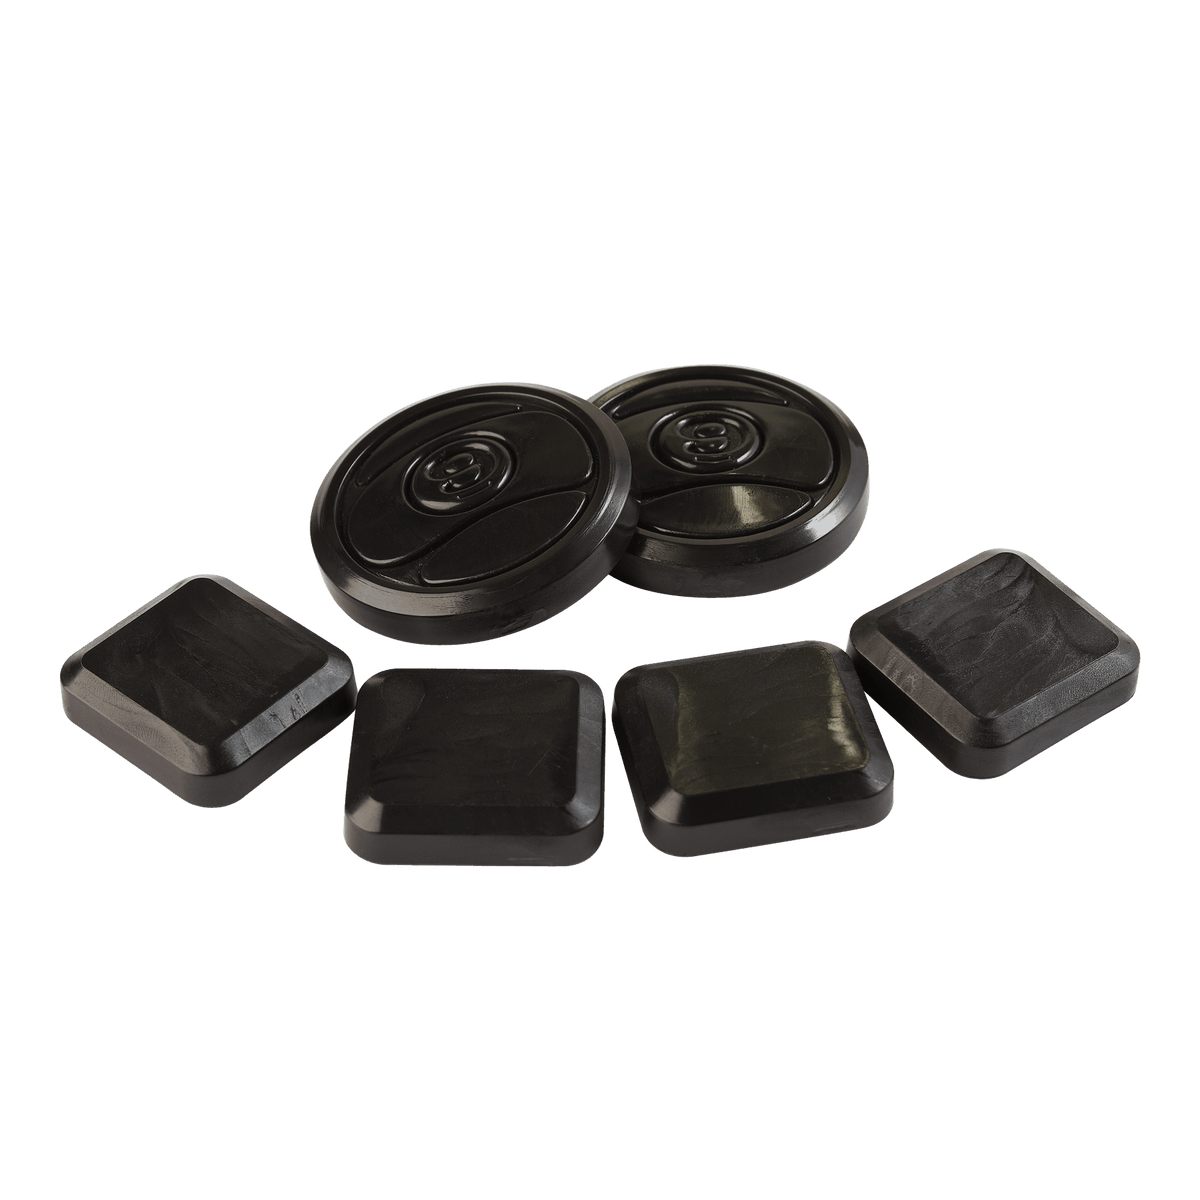 9 Ball & Finger Pucks Black